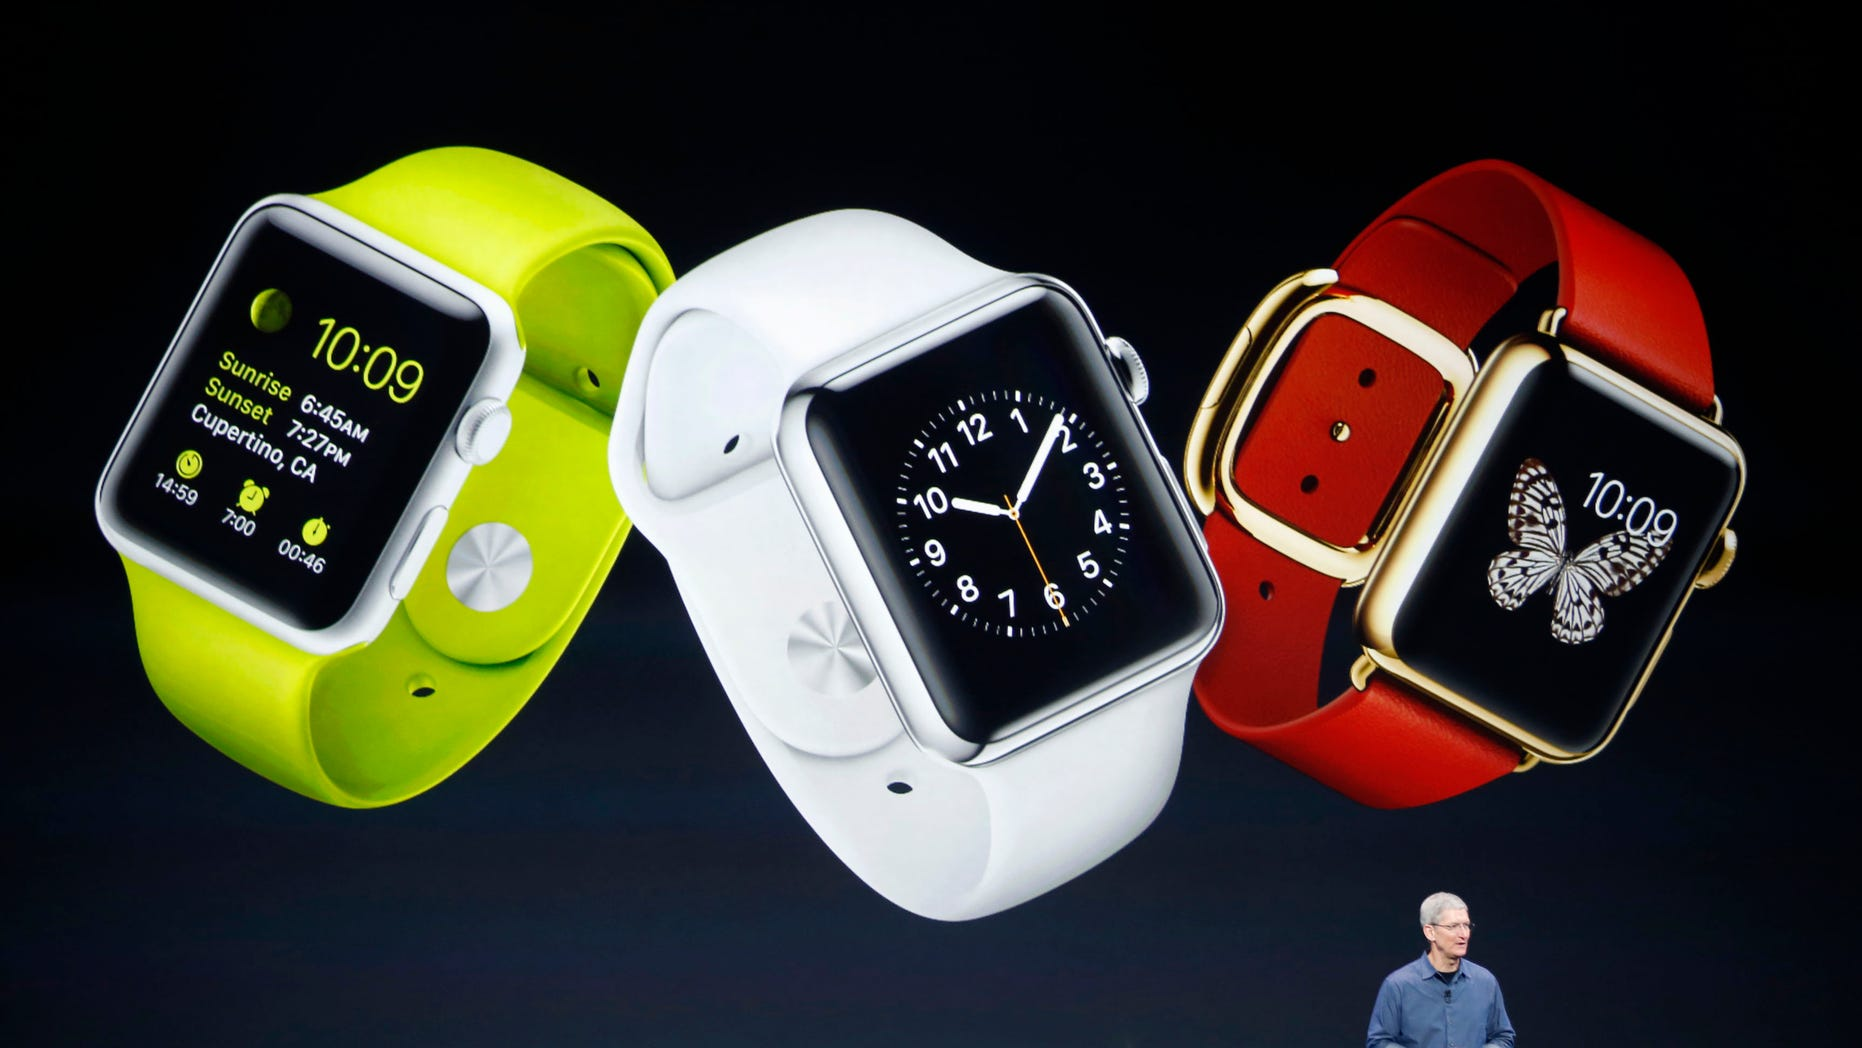 Sept. 6, 2014: Apple CEO Tim Cook speaks about the Apple Watch during an Apple event at the Flint Center in Cupertino, California.